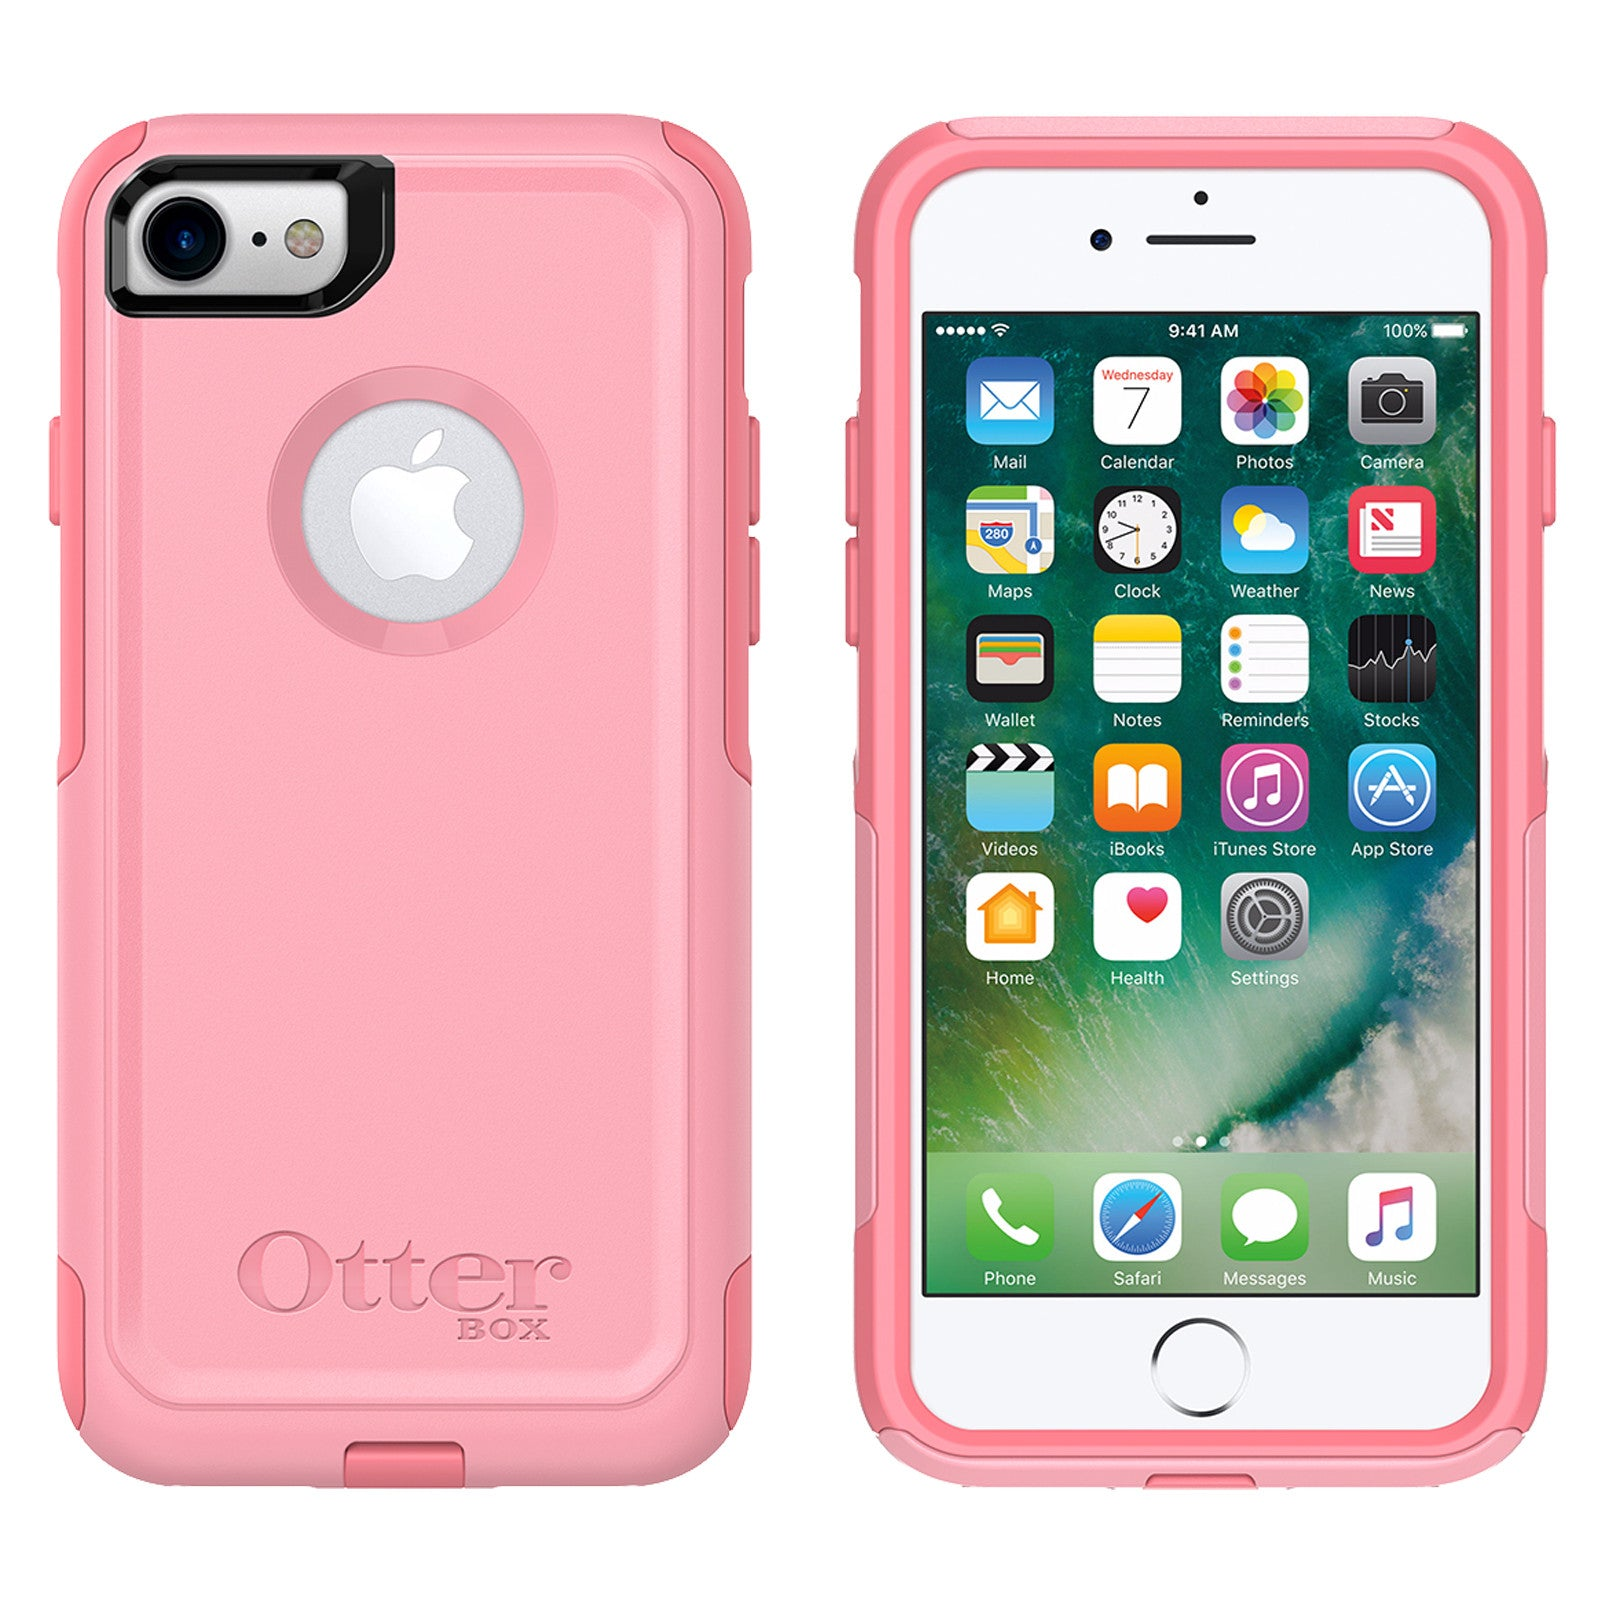 arrives f3cc9 ca229 OtterBox Commuter case for iPhone 7/8 - Rosmarine Way